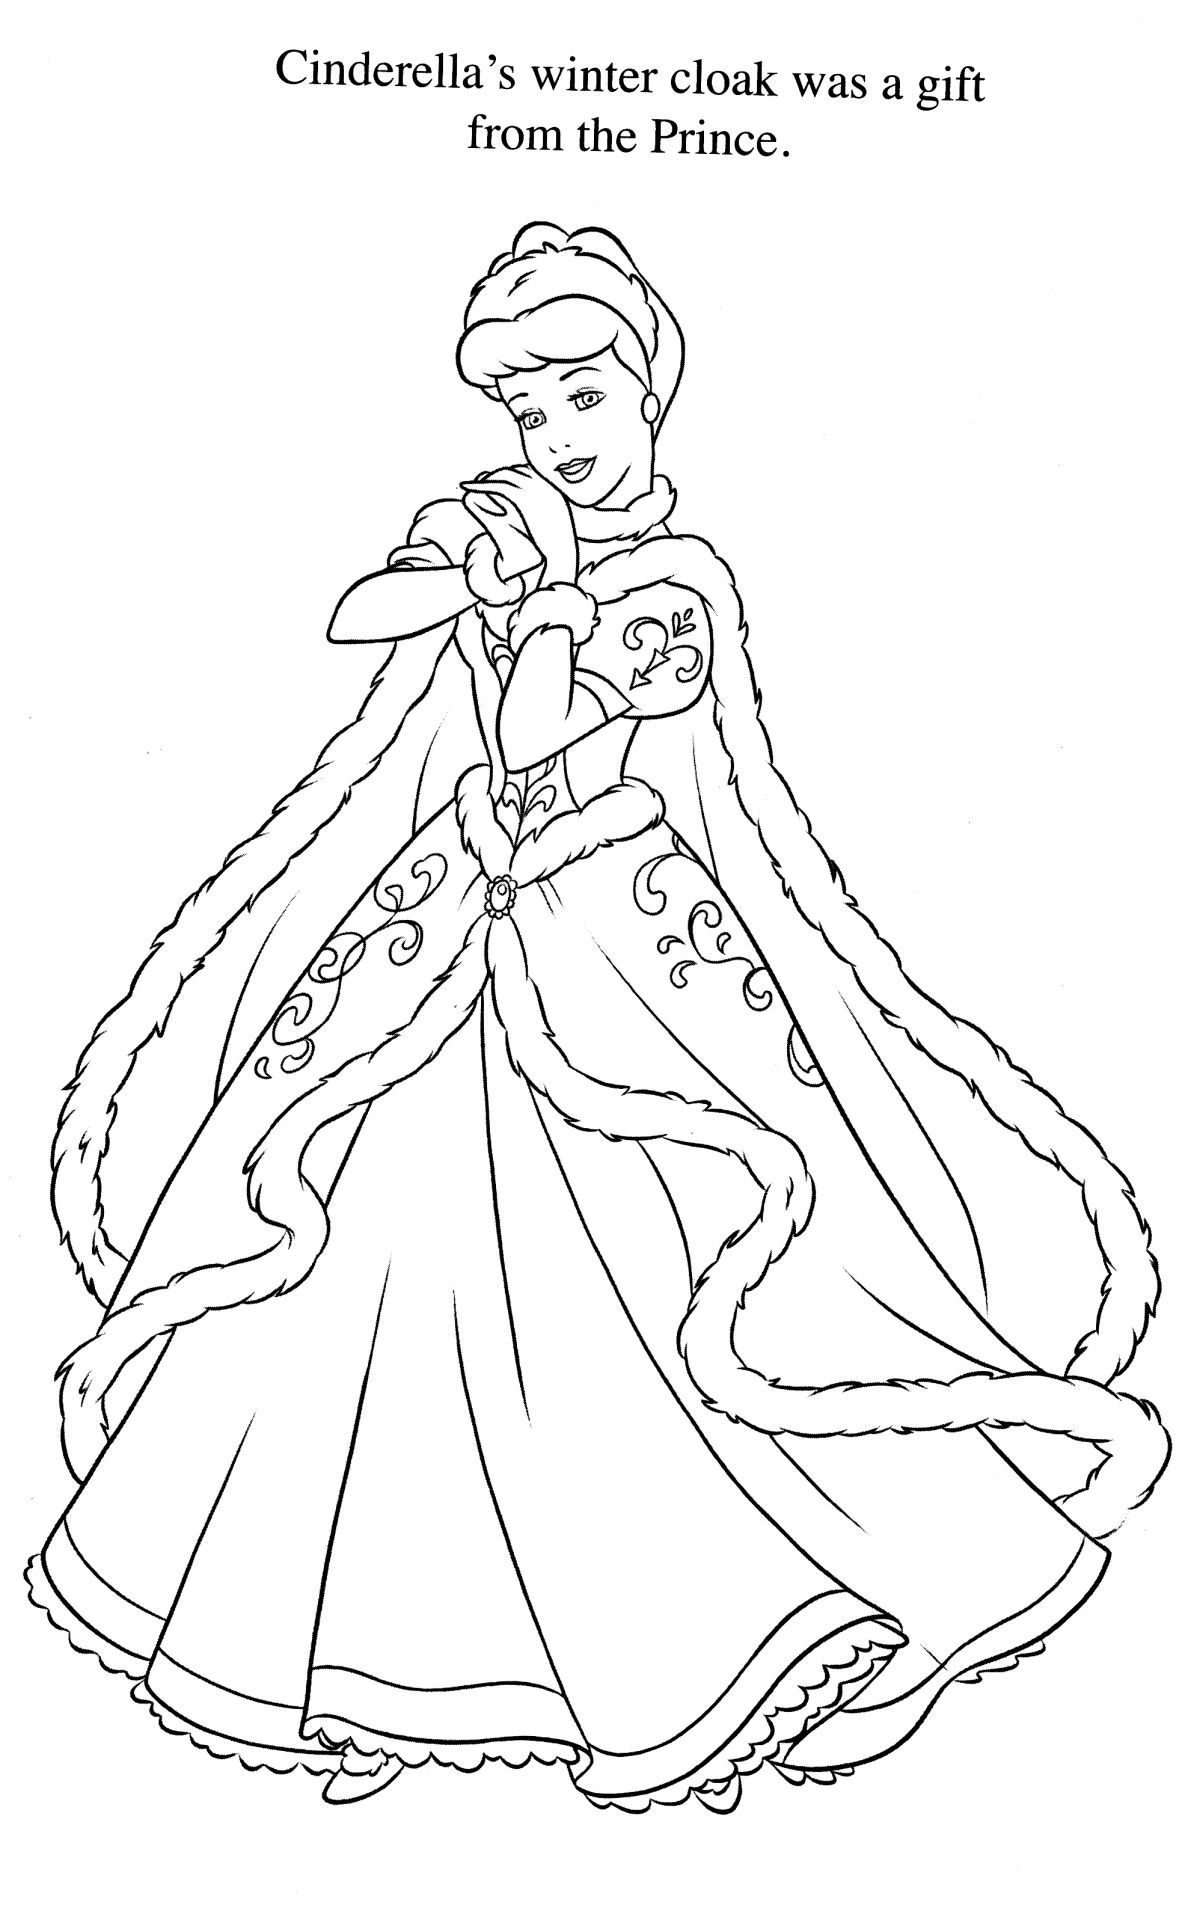 Disney Coloring Pages Disney Princess Coloring Pages Disney Princess Colors Princess Coloring Pages